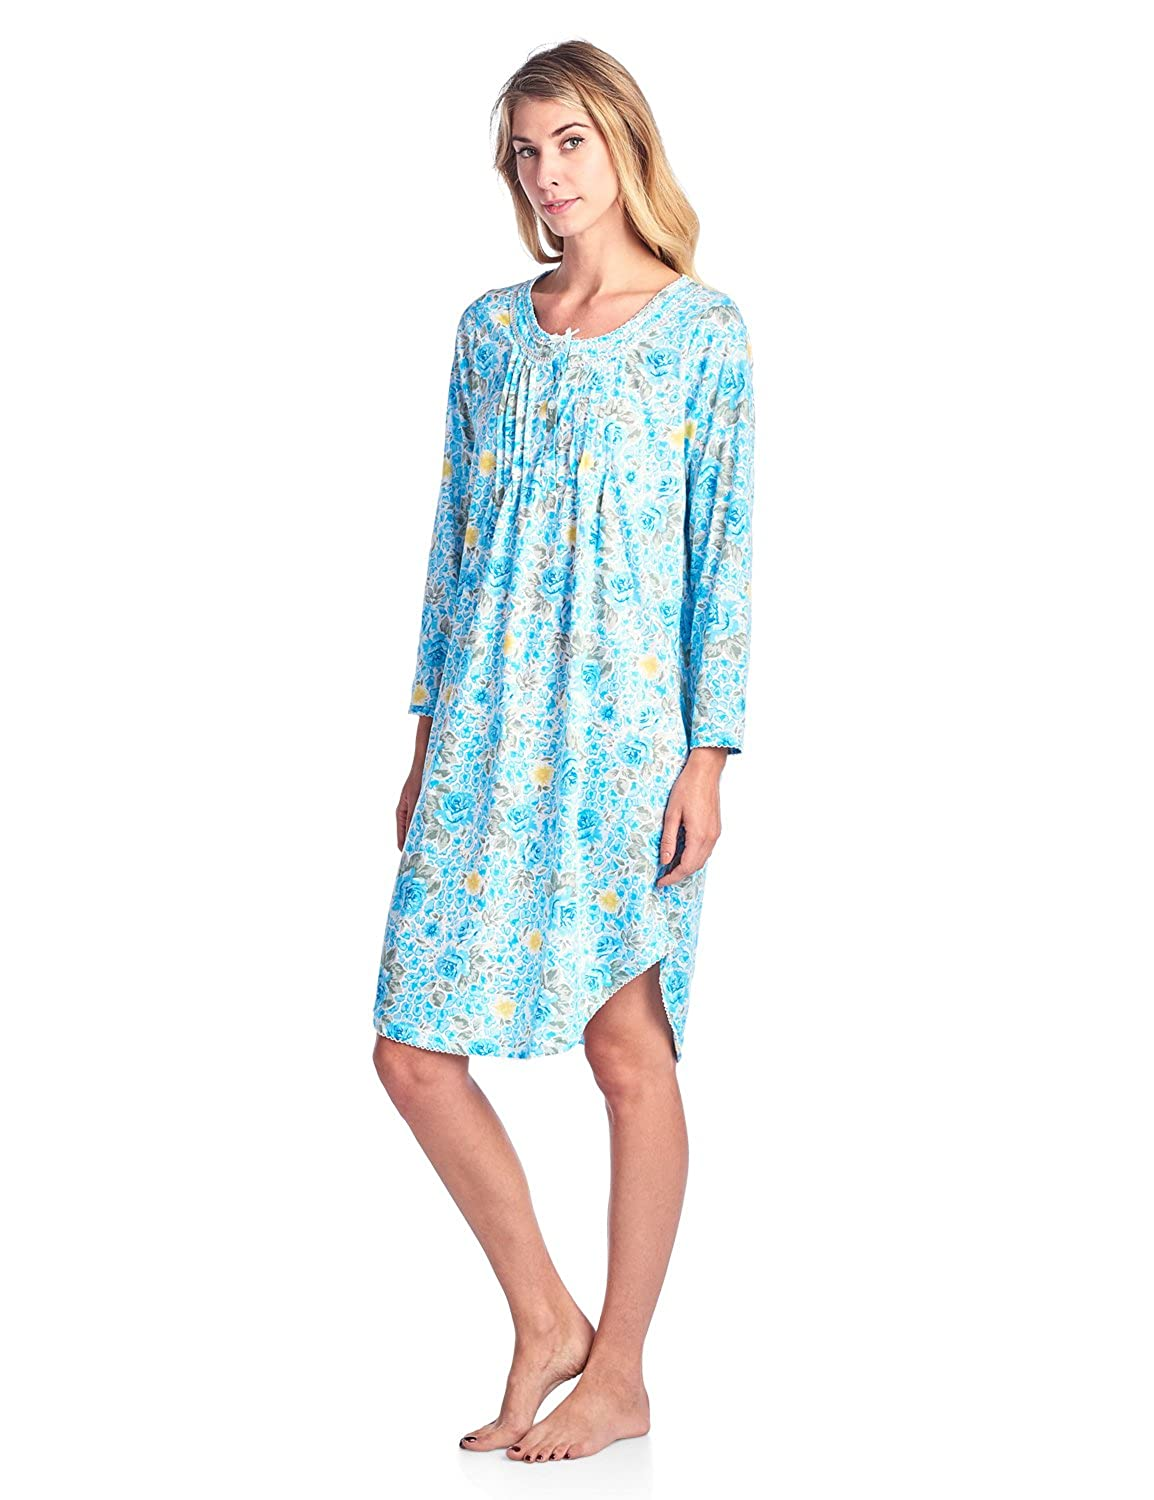 Casual Nights Women s Round Neck Long Sleeve Lace Floral Nightgown at Amazon  Women s Clothing store  edc9f9ddc